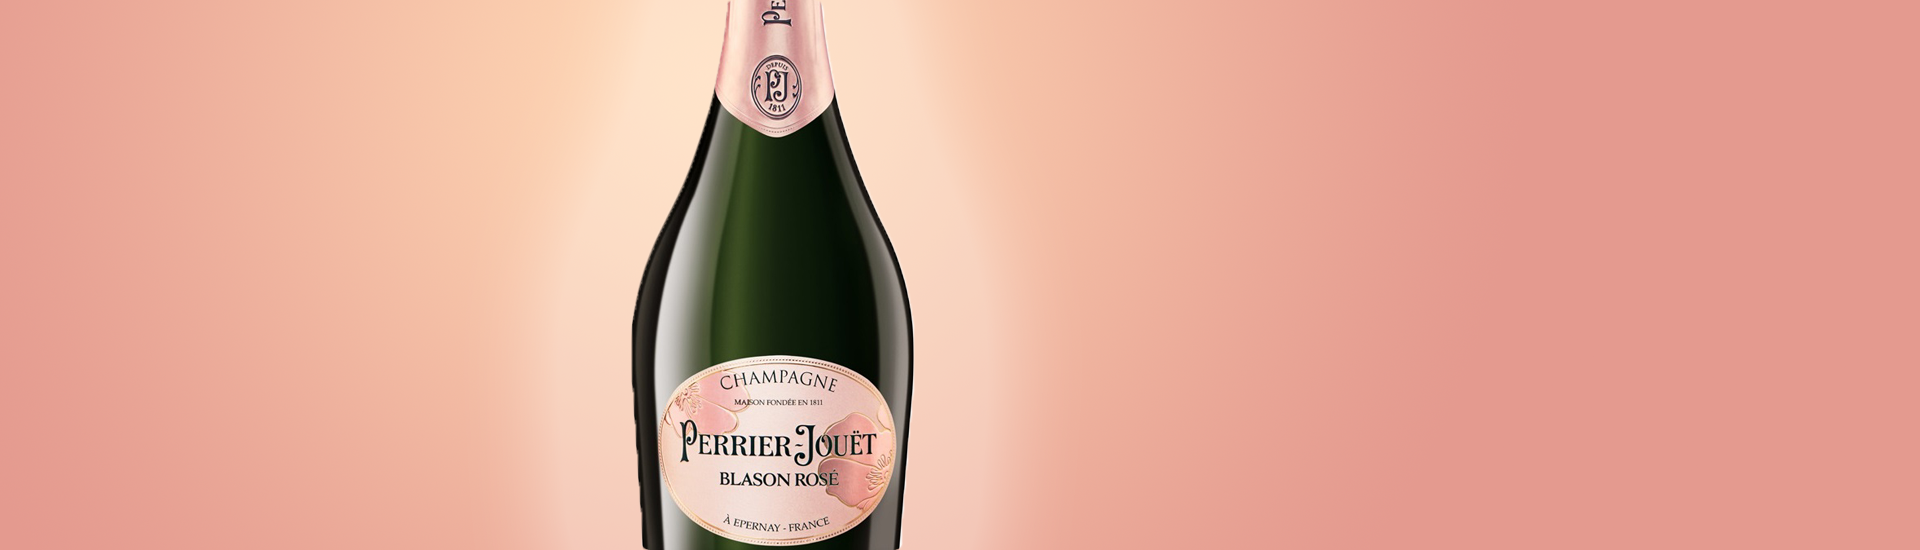 PERRIER JOUET BLASON ROSE - CHAMPAGNE PREMIUM - CHAMPAGNE